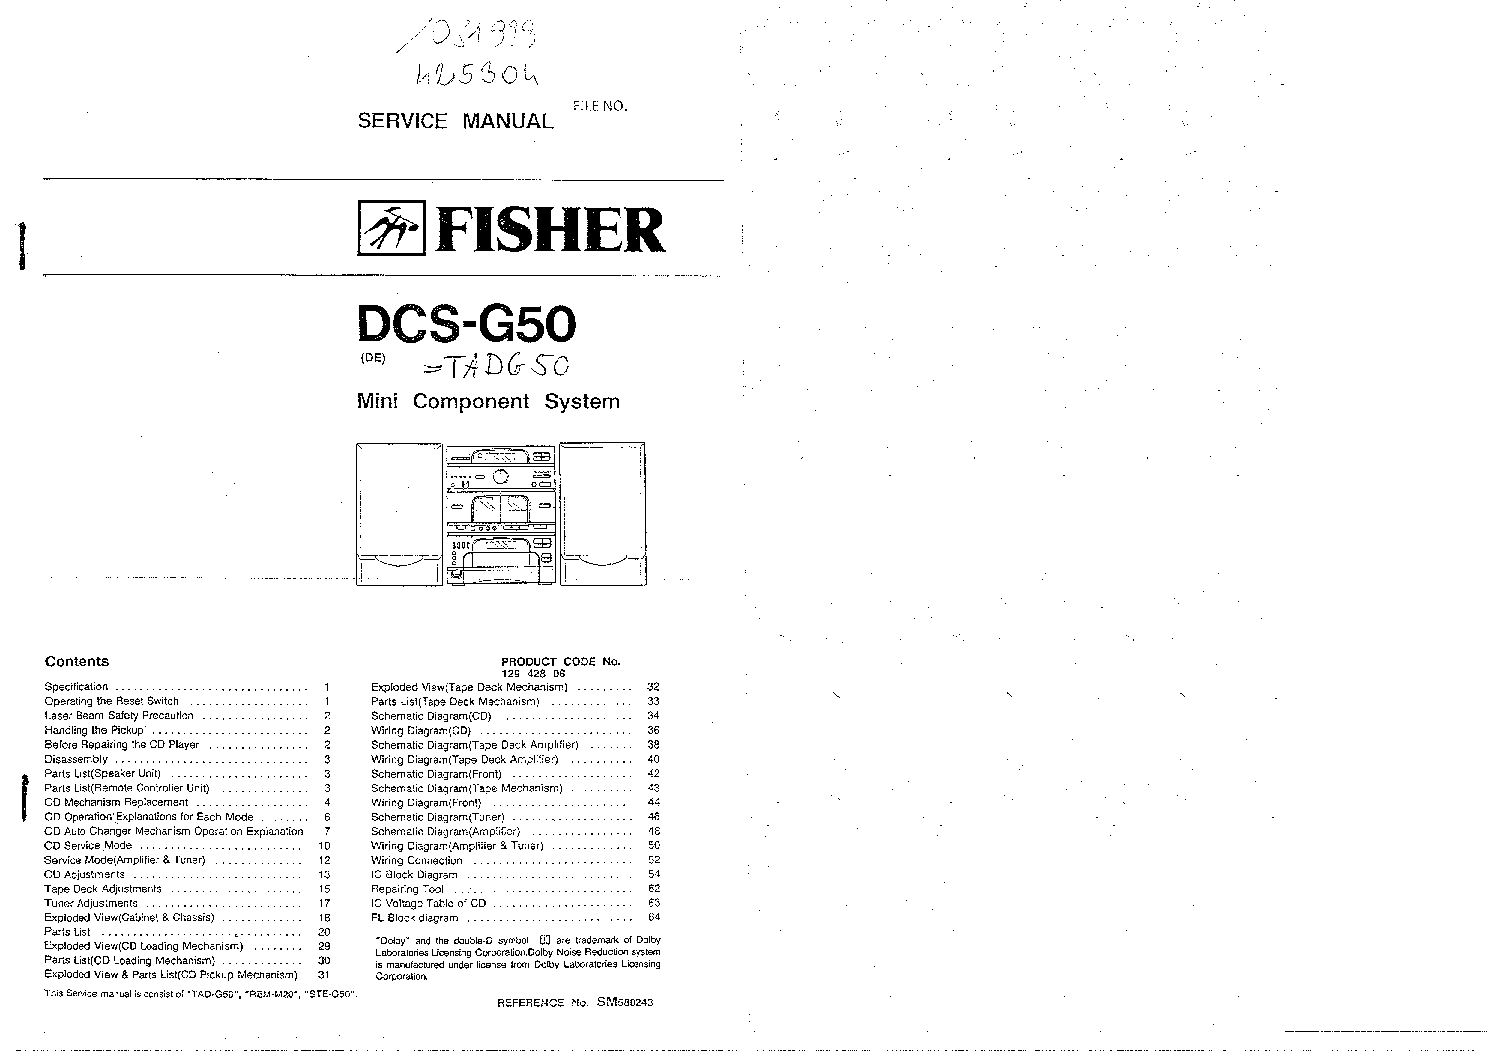 fisher dcs-g50 service manual (1st page)